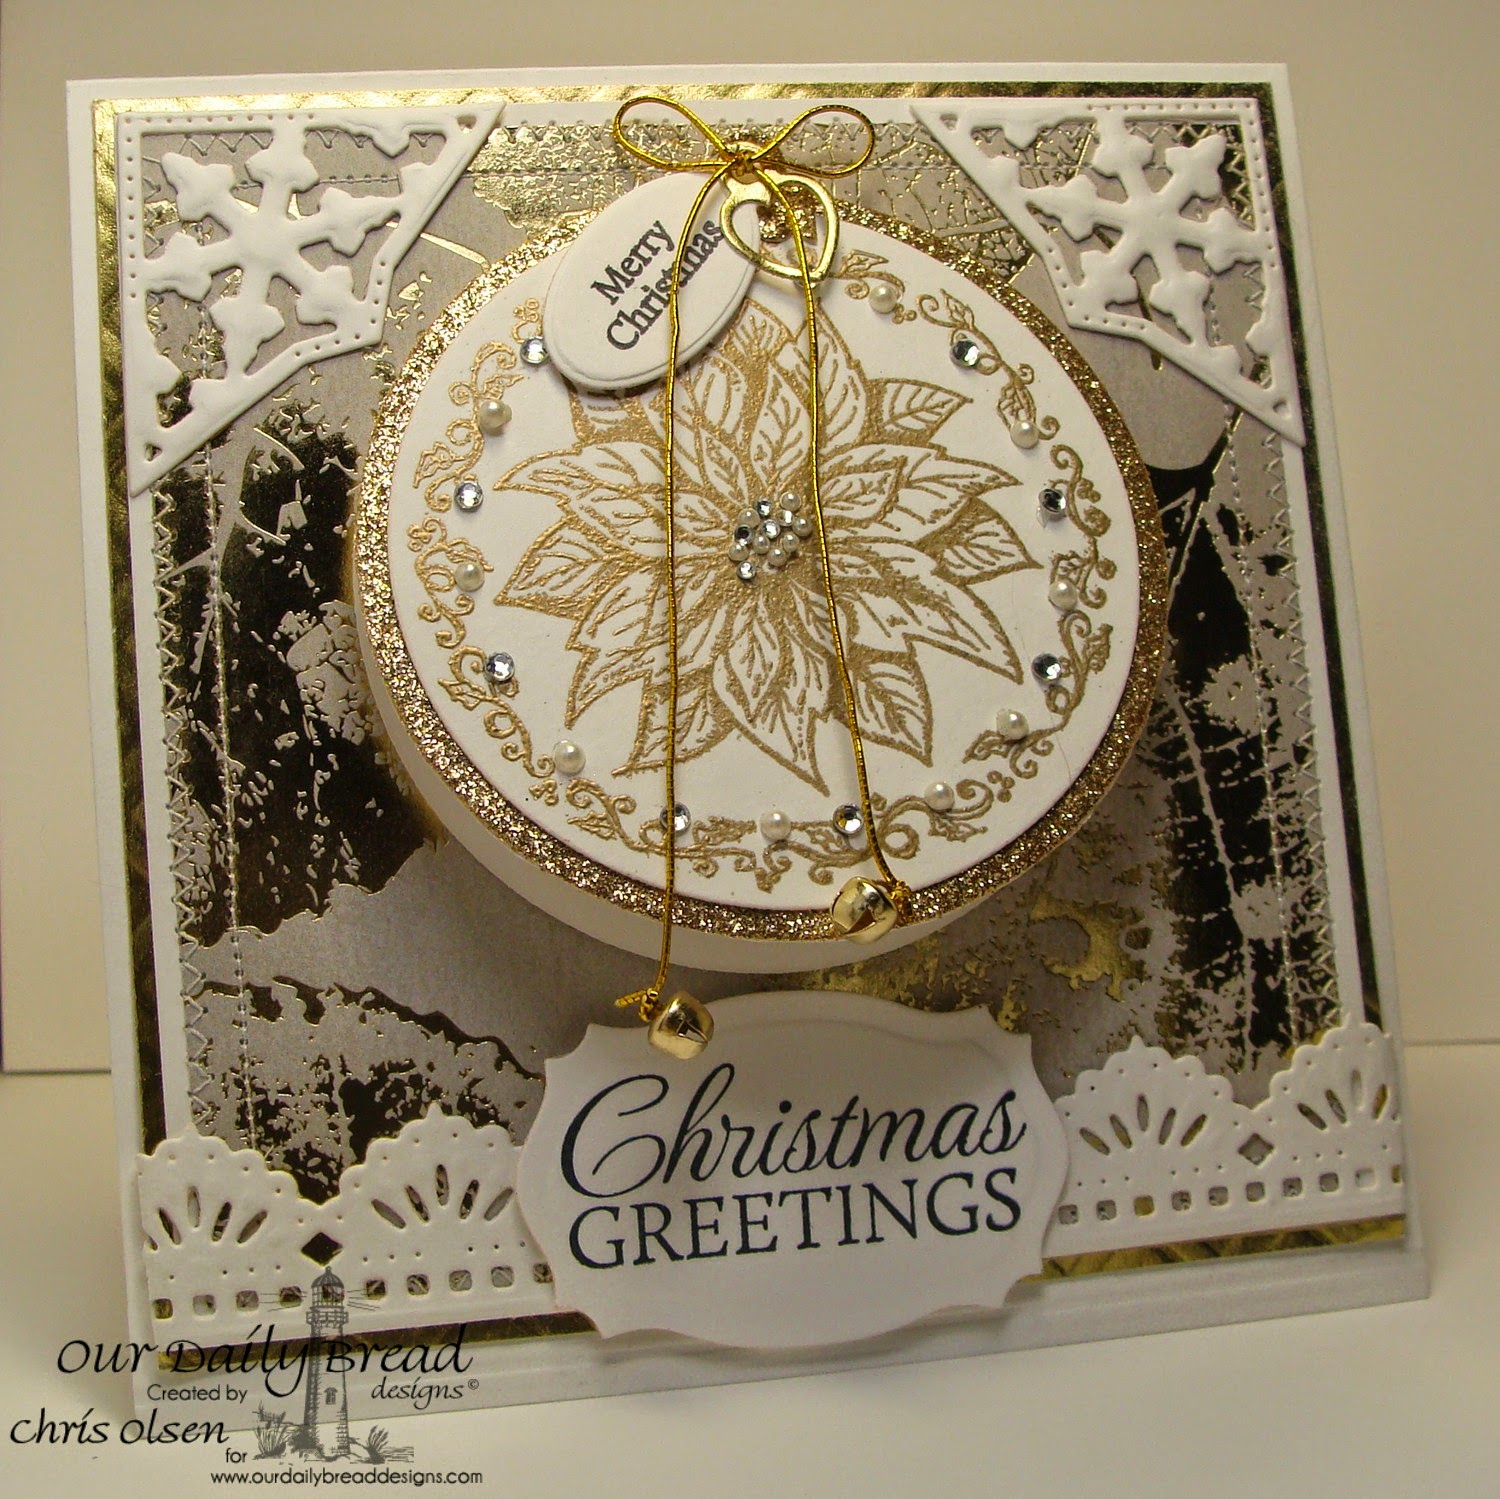 Our Daily Bread Designs, Poinsettia Ornament, Let it Snow, Mini Tag Sentiments, Mini Tag Dies, Circle Ornament Dies, Matting Circles, Beautiful Borders, Fancy Ornaments, Designer-Chris Olsen